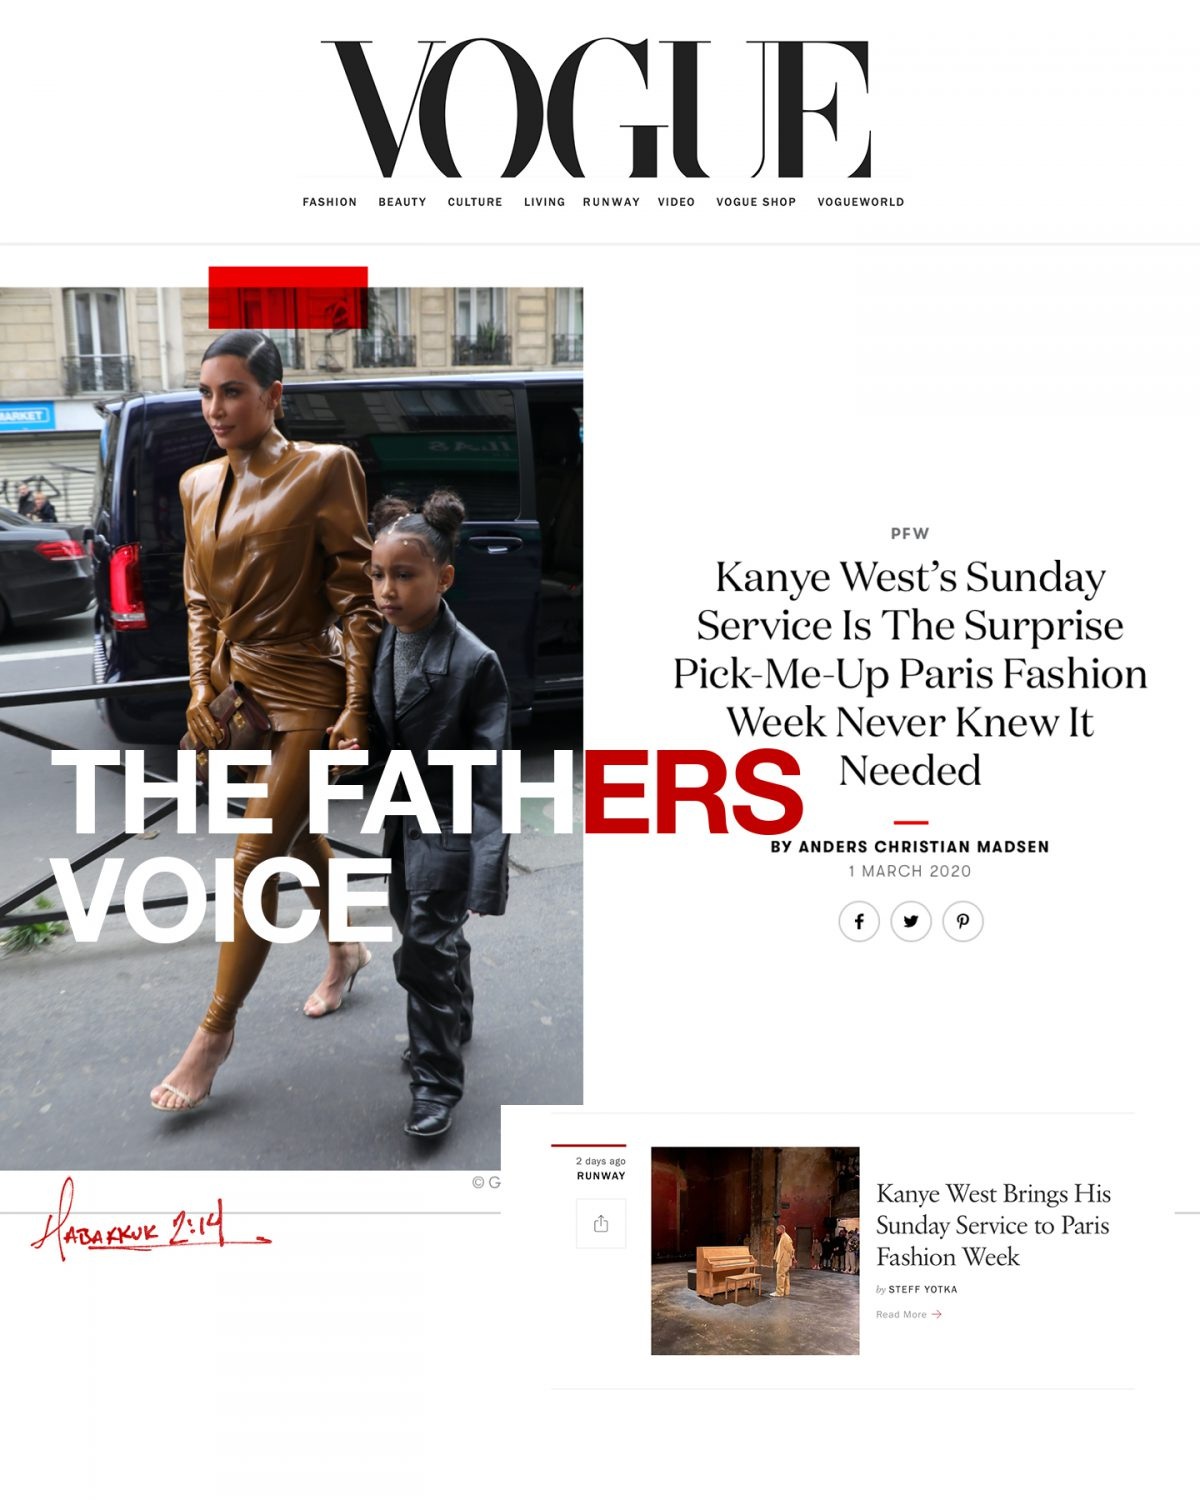 The Fathers Voice in Vogue Magazine